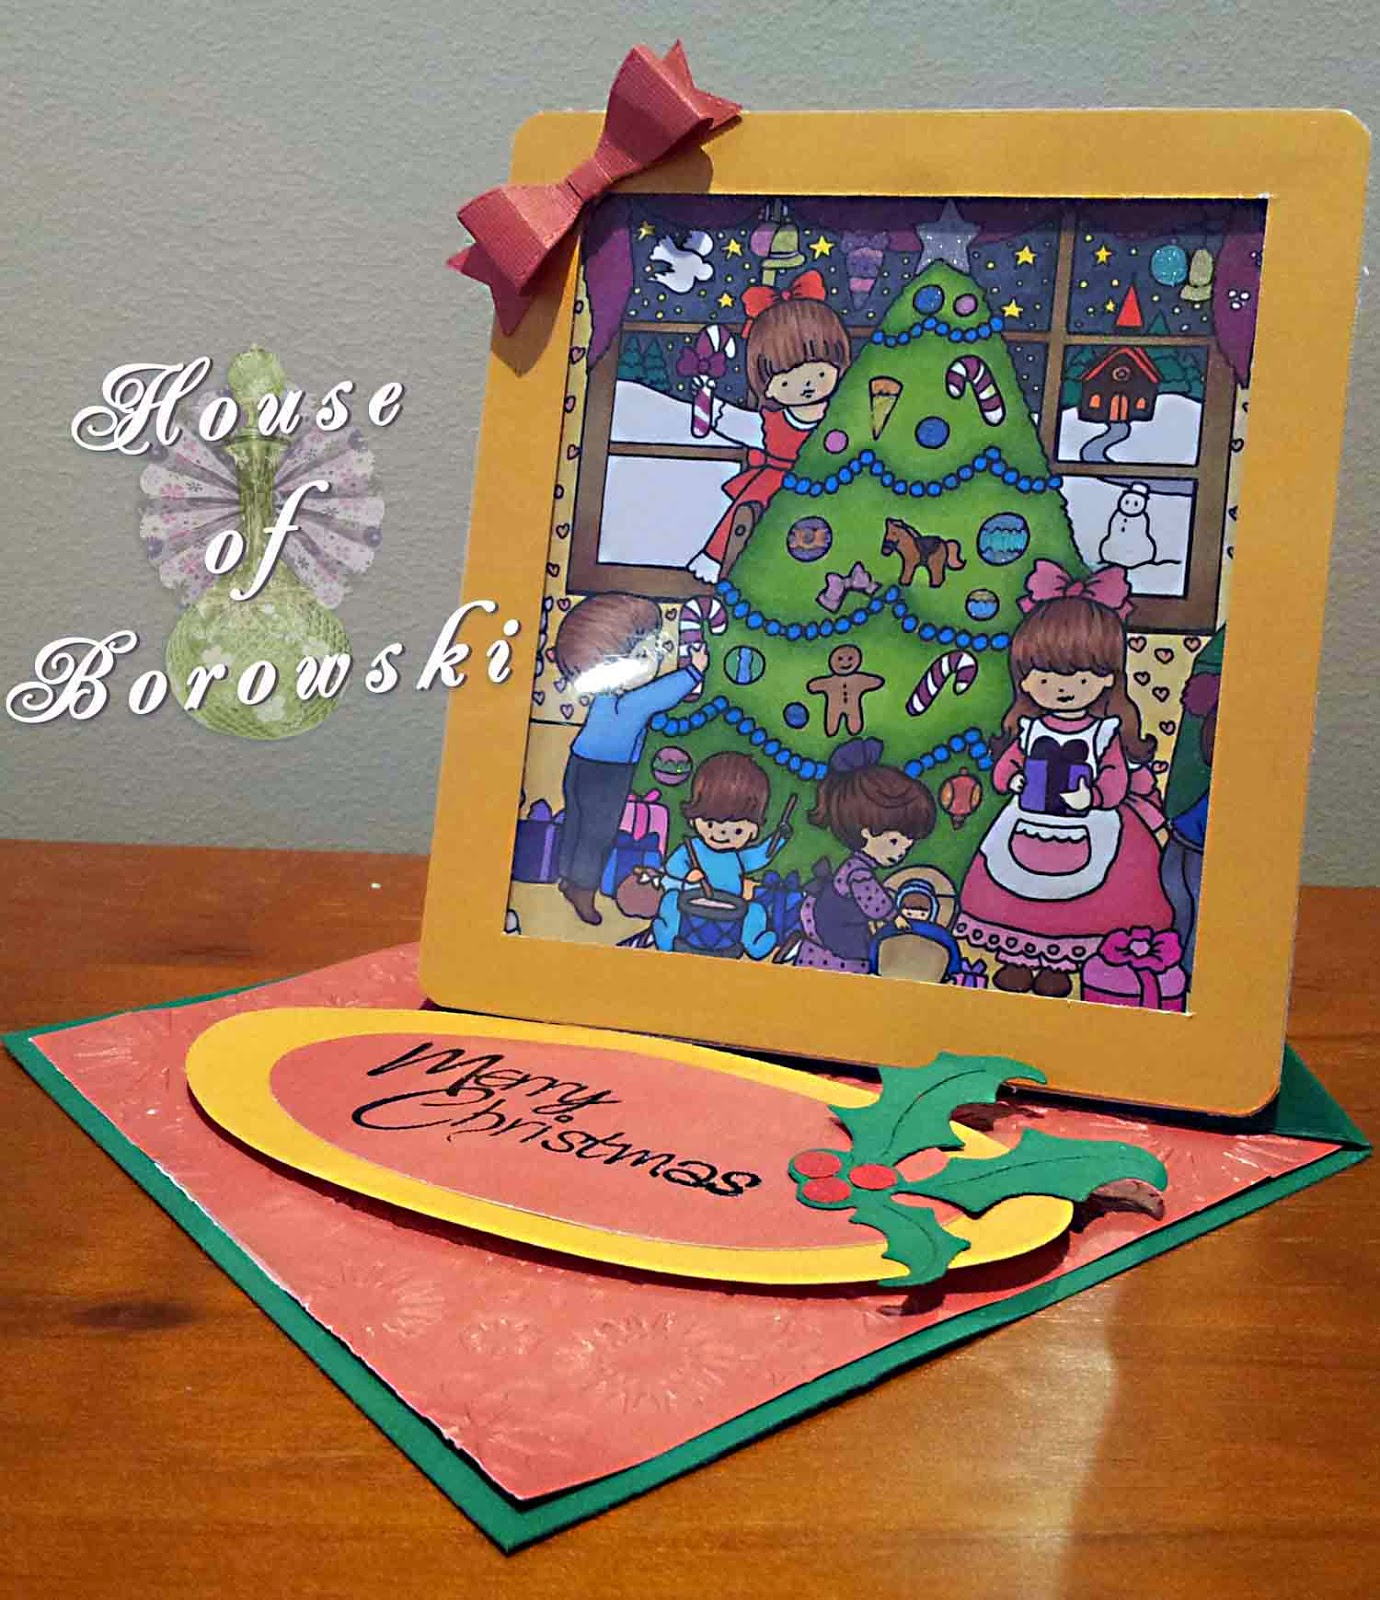 House of Borowski, christmas scene 2, cuttlebug snowflakes, spellbinders mega ovals, izzix christmas set 3, Lil'Inker Designs bow die-mini, Eclectic Images